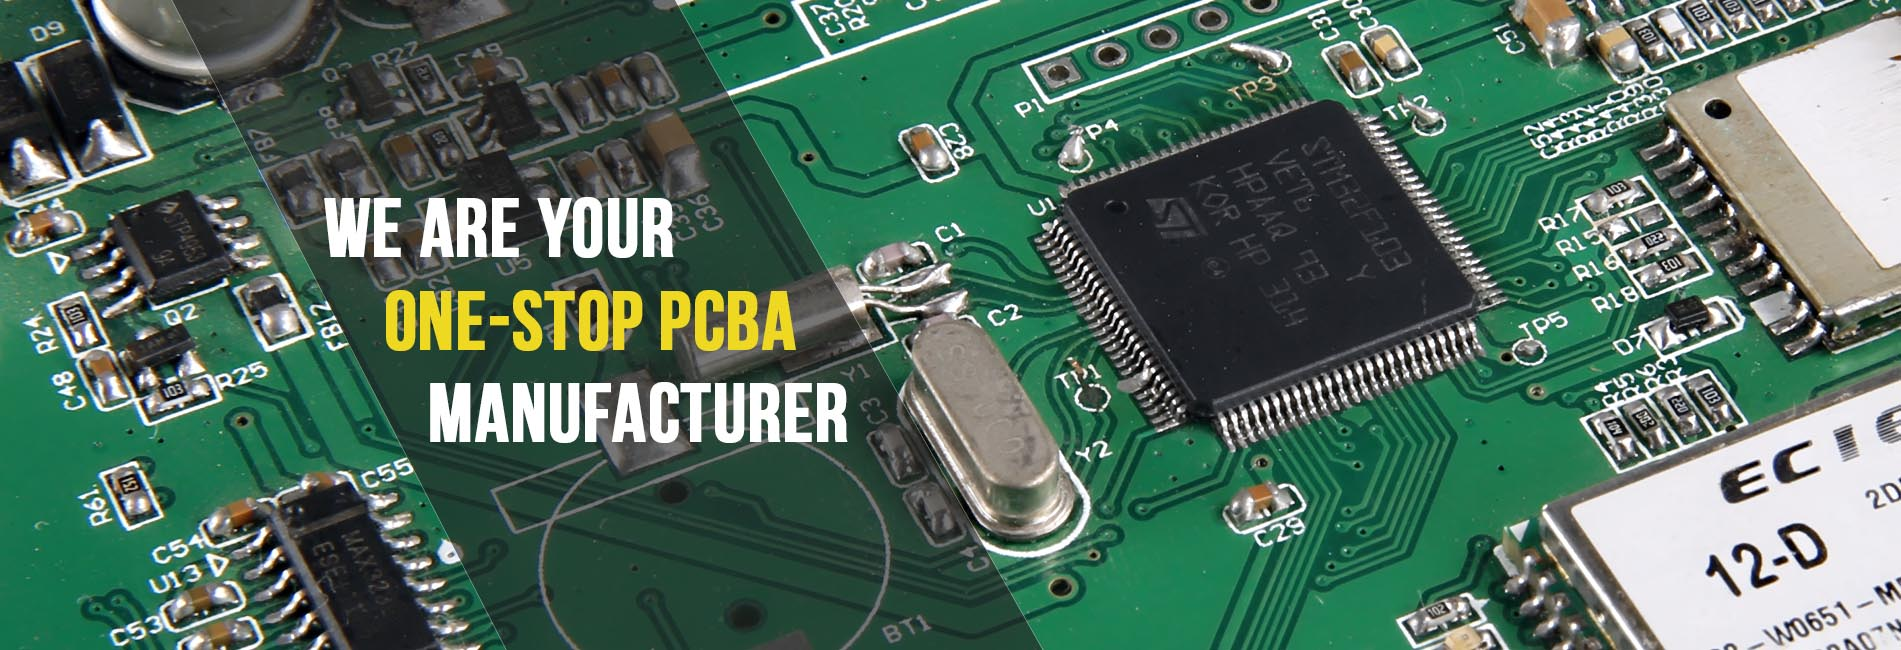 Printed Circuit Board Assembly Pcba Pcb Design Services China Electronic And Digital Sliders11